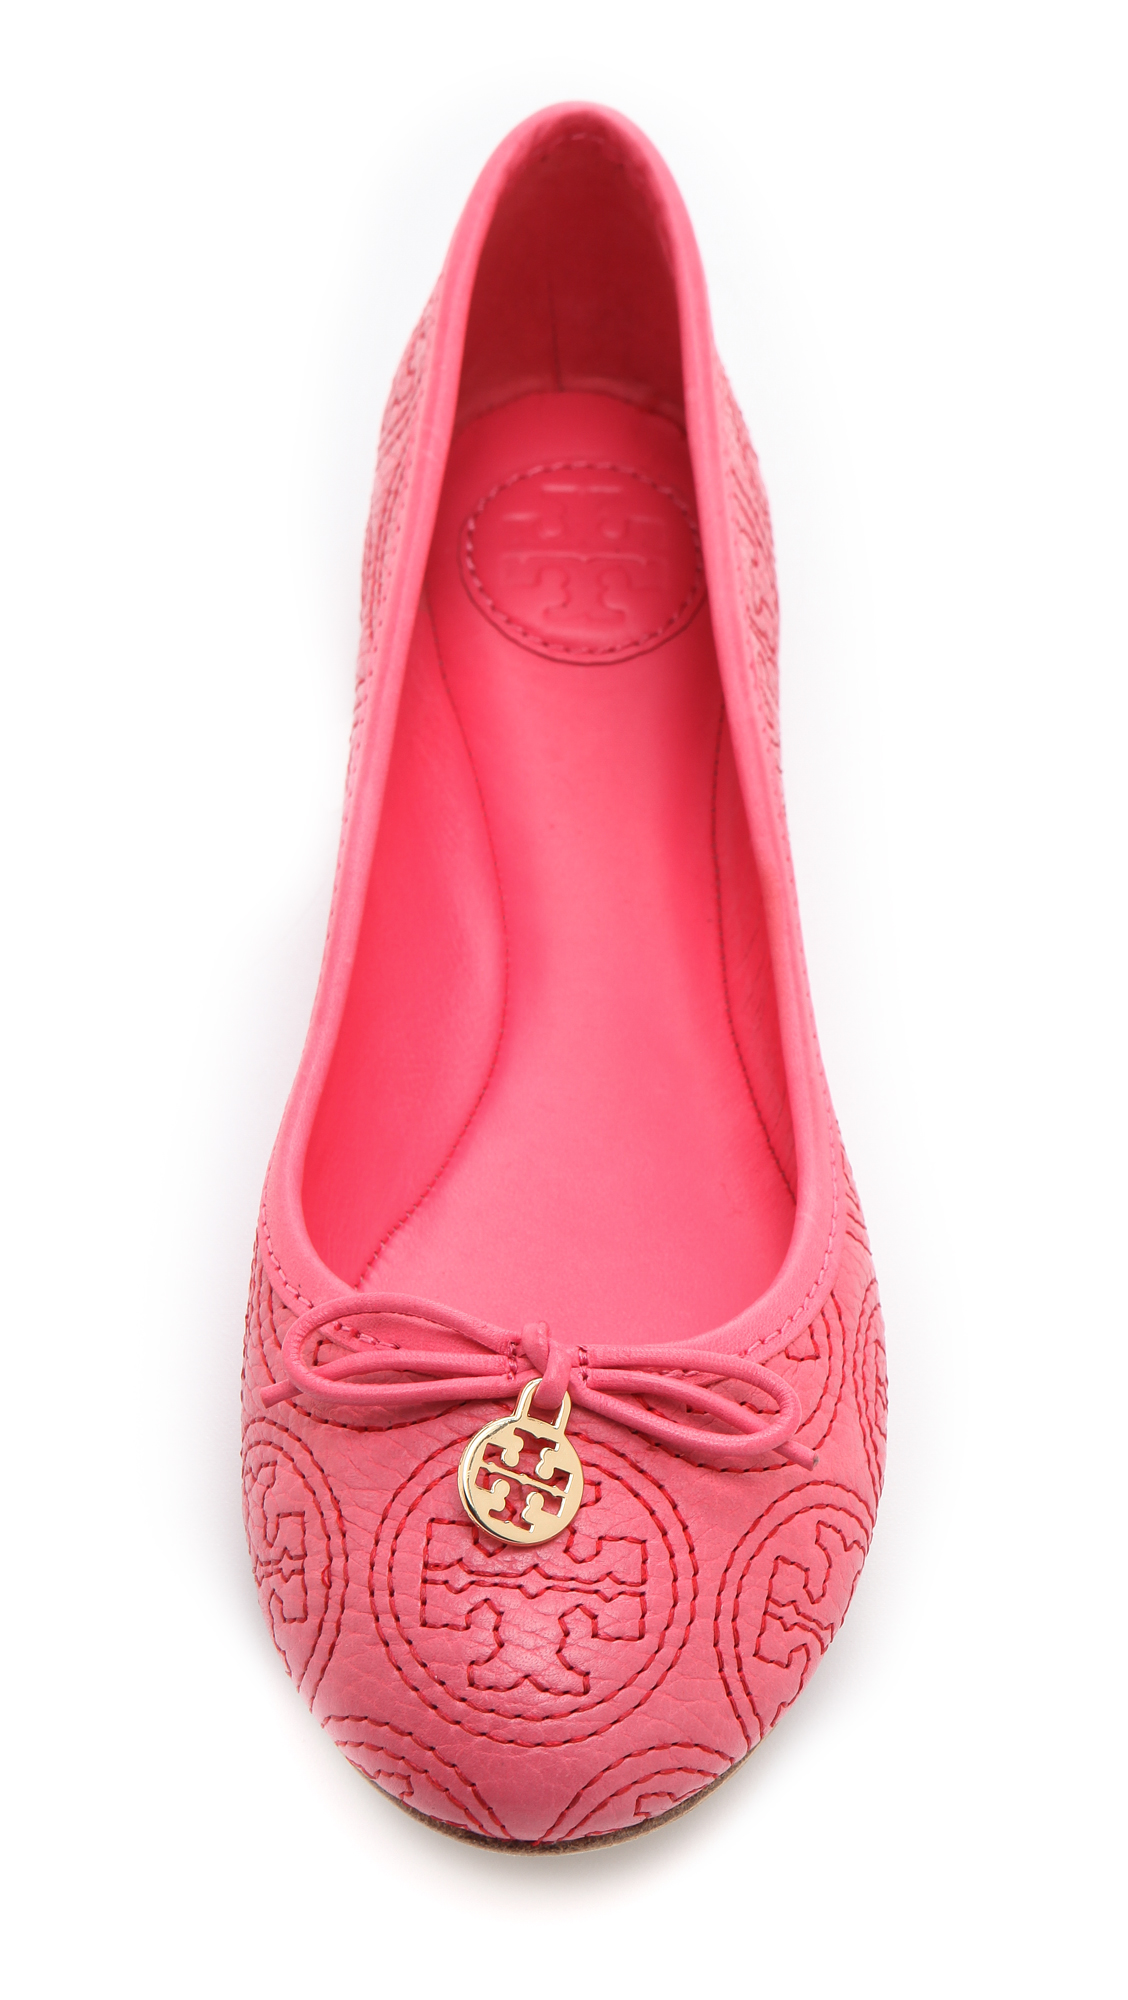 c5cbc4f75a46 ... promo code for lyst tory burch chelsea stitched ballet flats in pink  eb1ca c8728